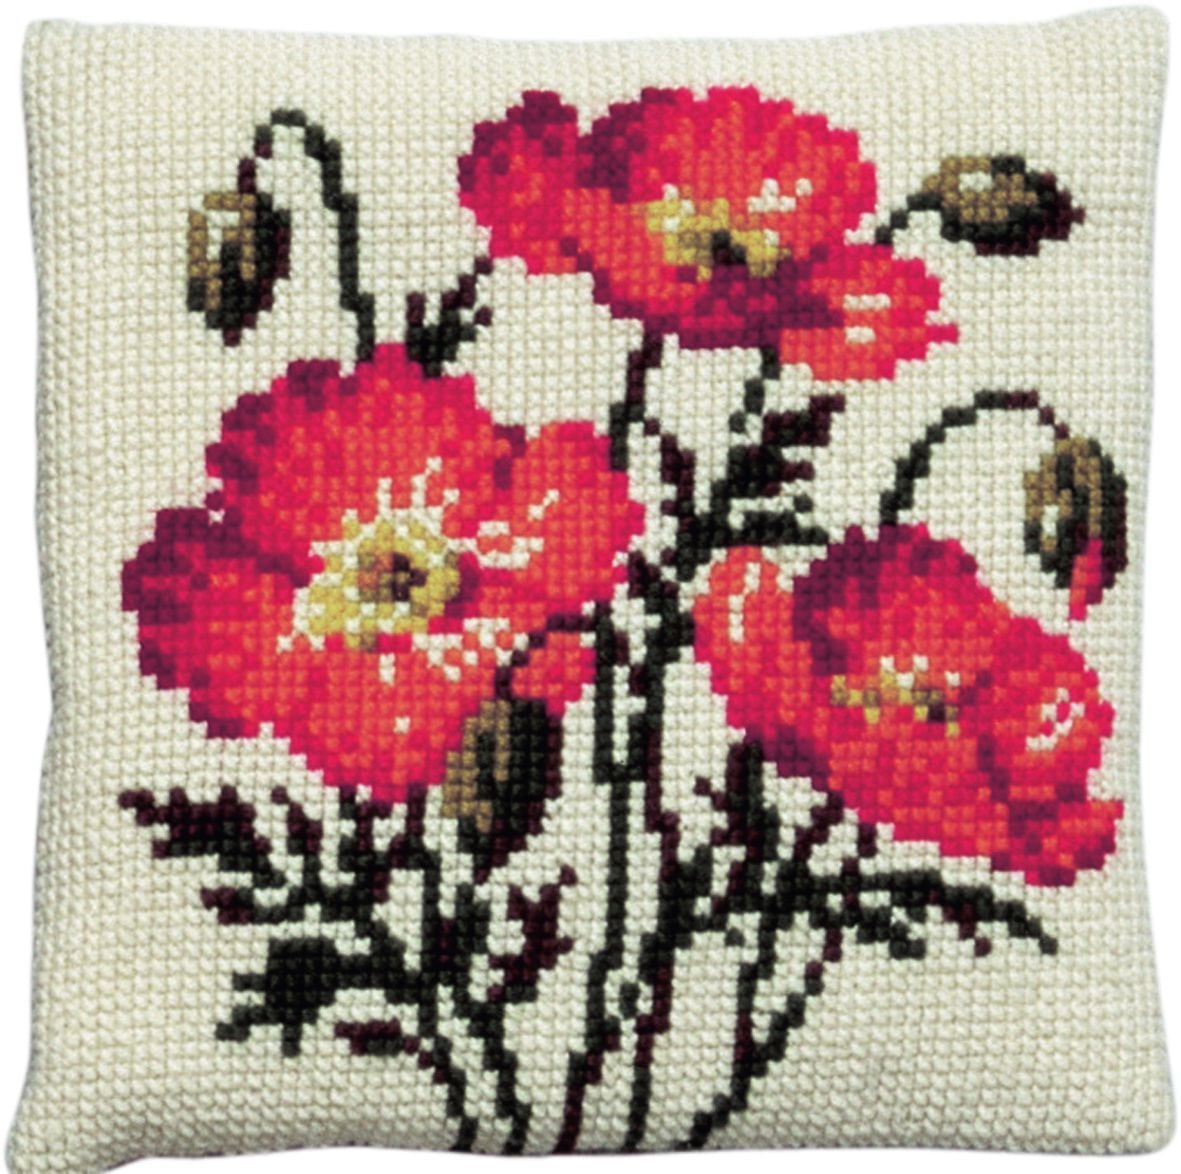 cross stitch cushion red poppies printed